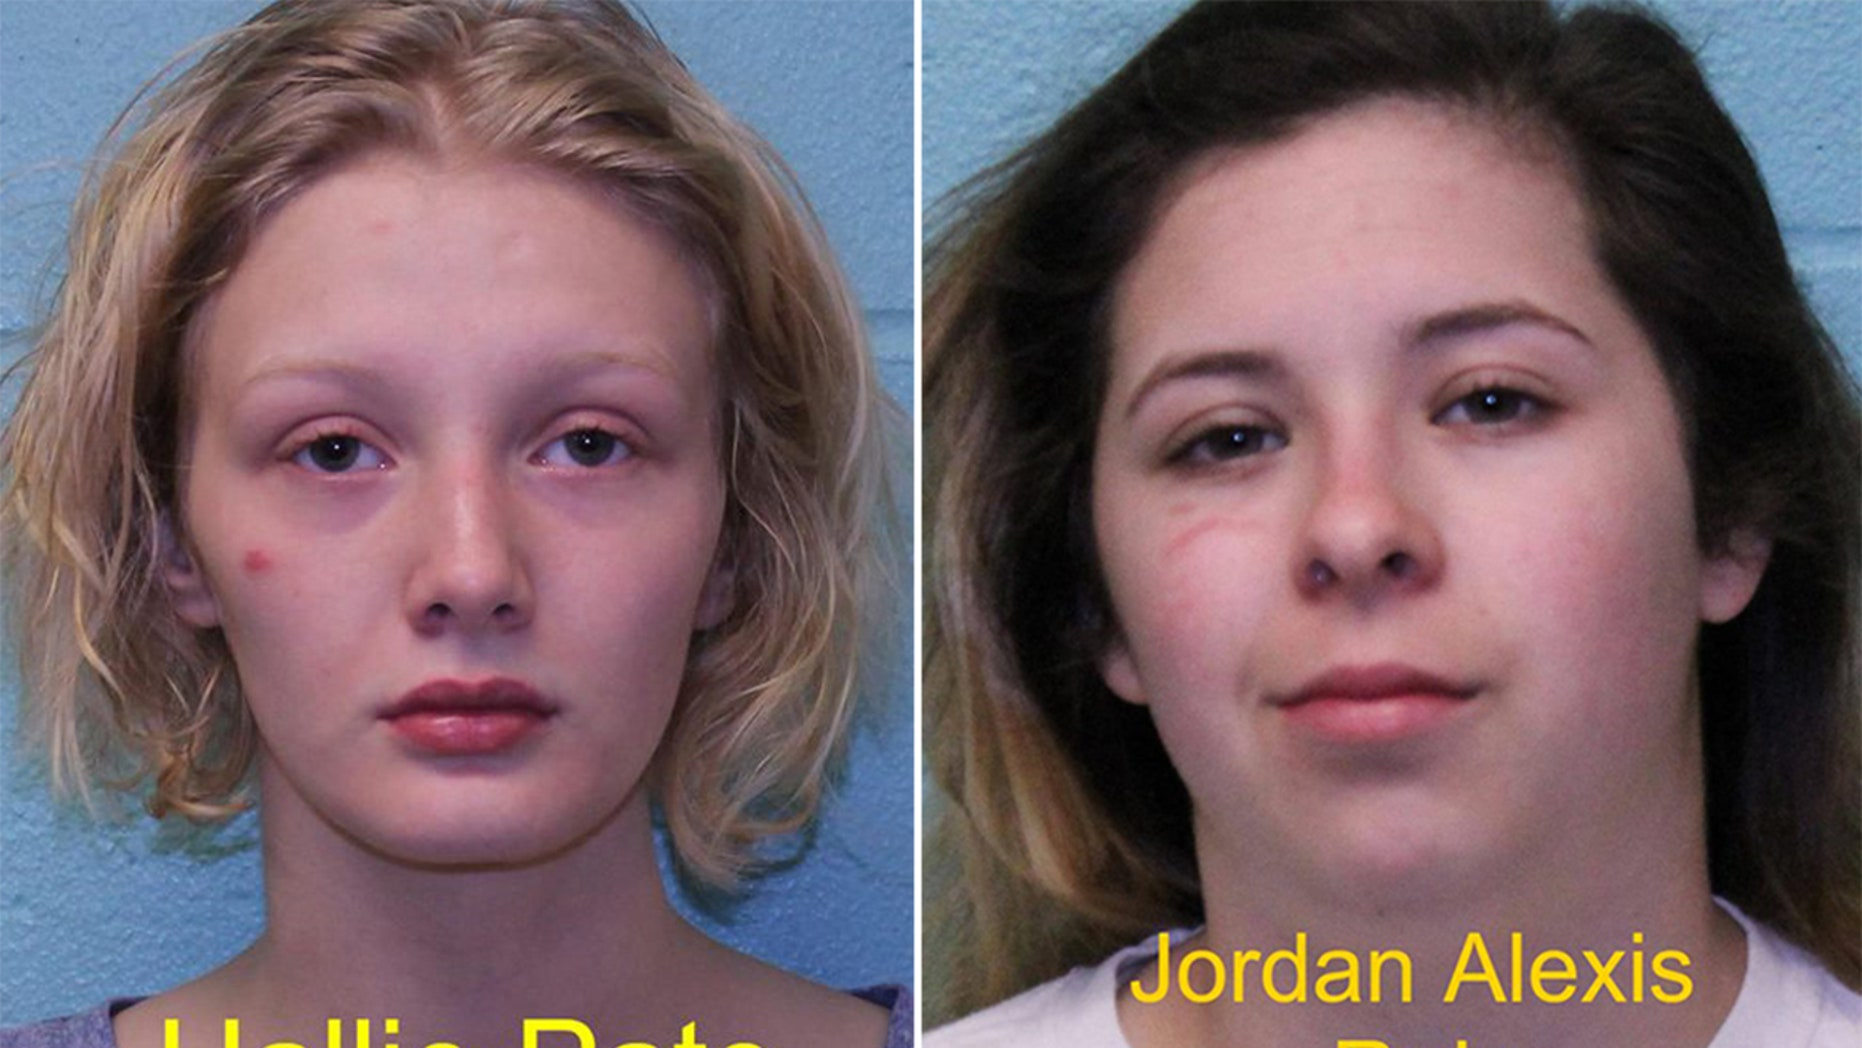 Hallie Pate, left, and Jordan Alexis Ruiz were arrested for breaking into a home and killing the pets inside, officials said.